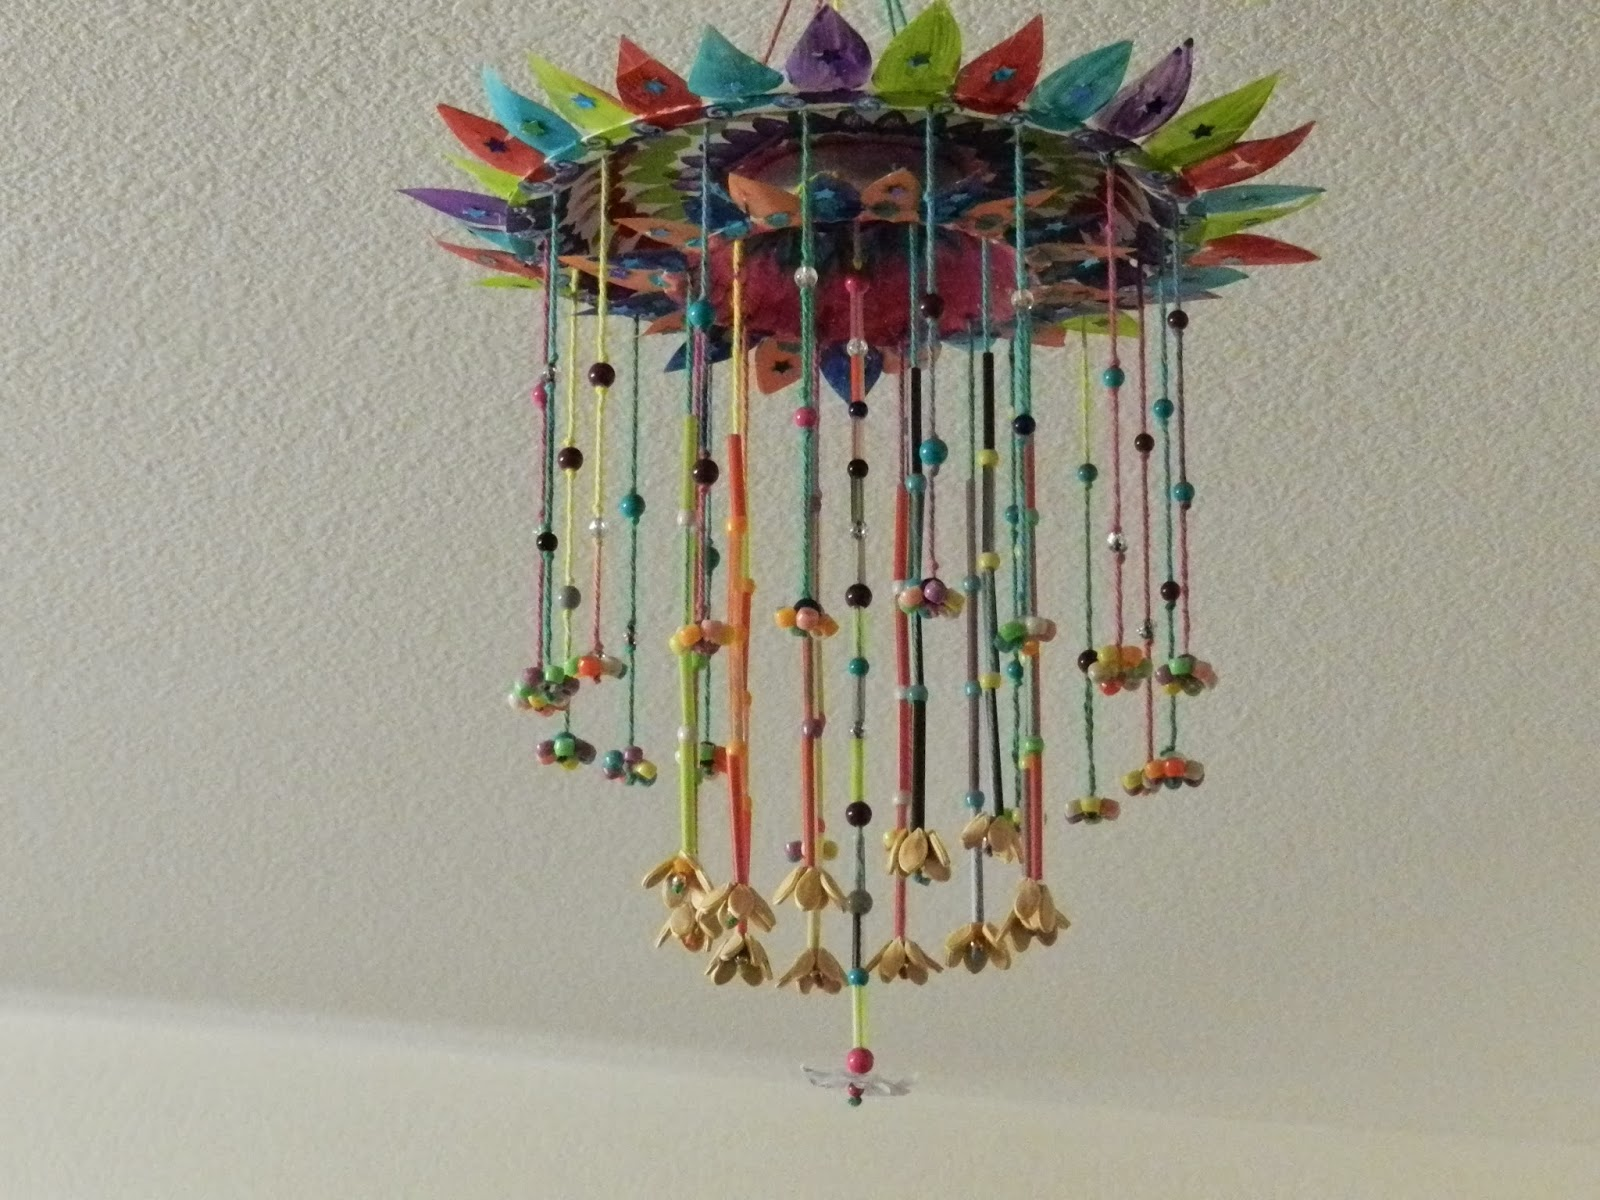 Creative diy crafts paper plate hanging craft with beads for Craft ideas using waste materials